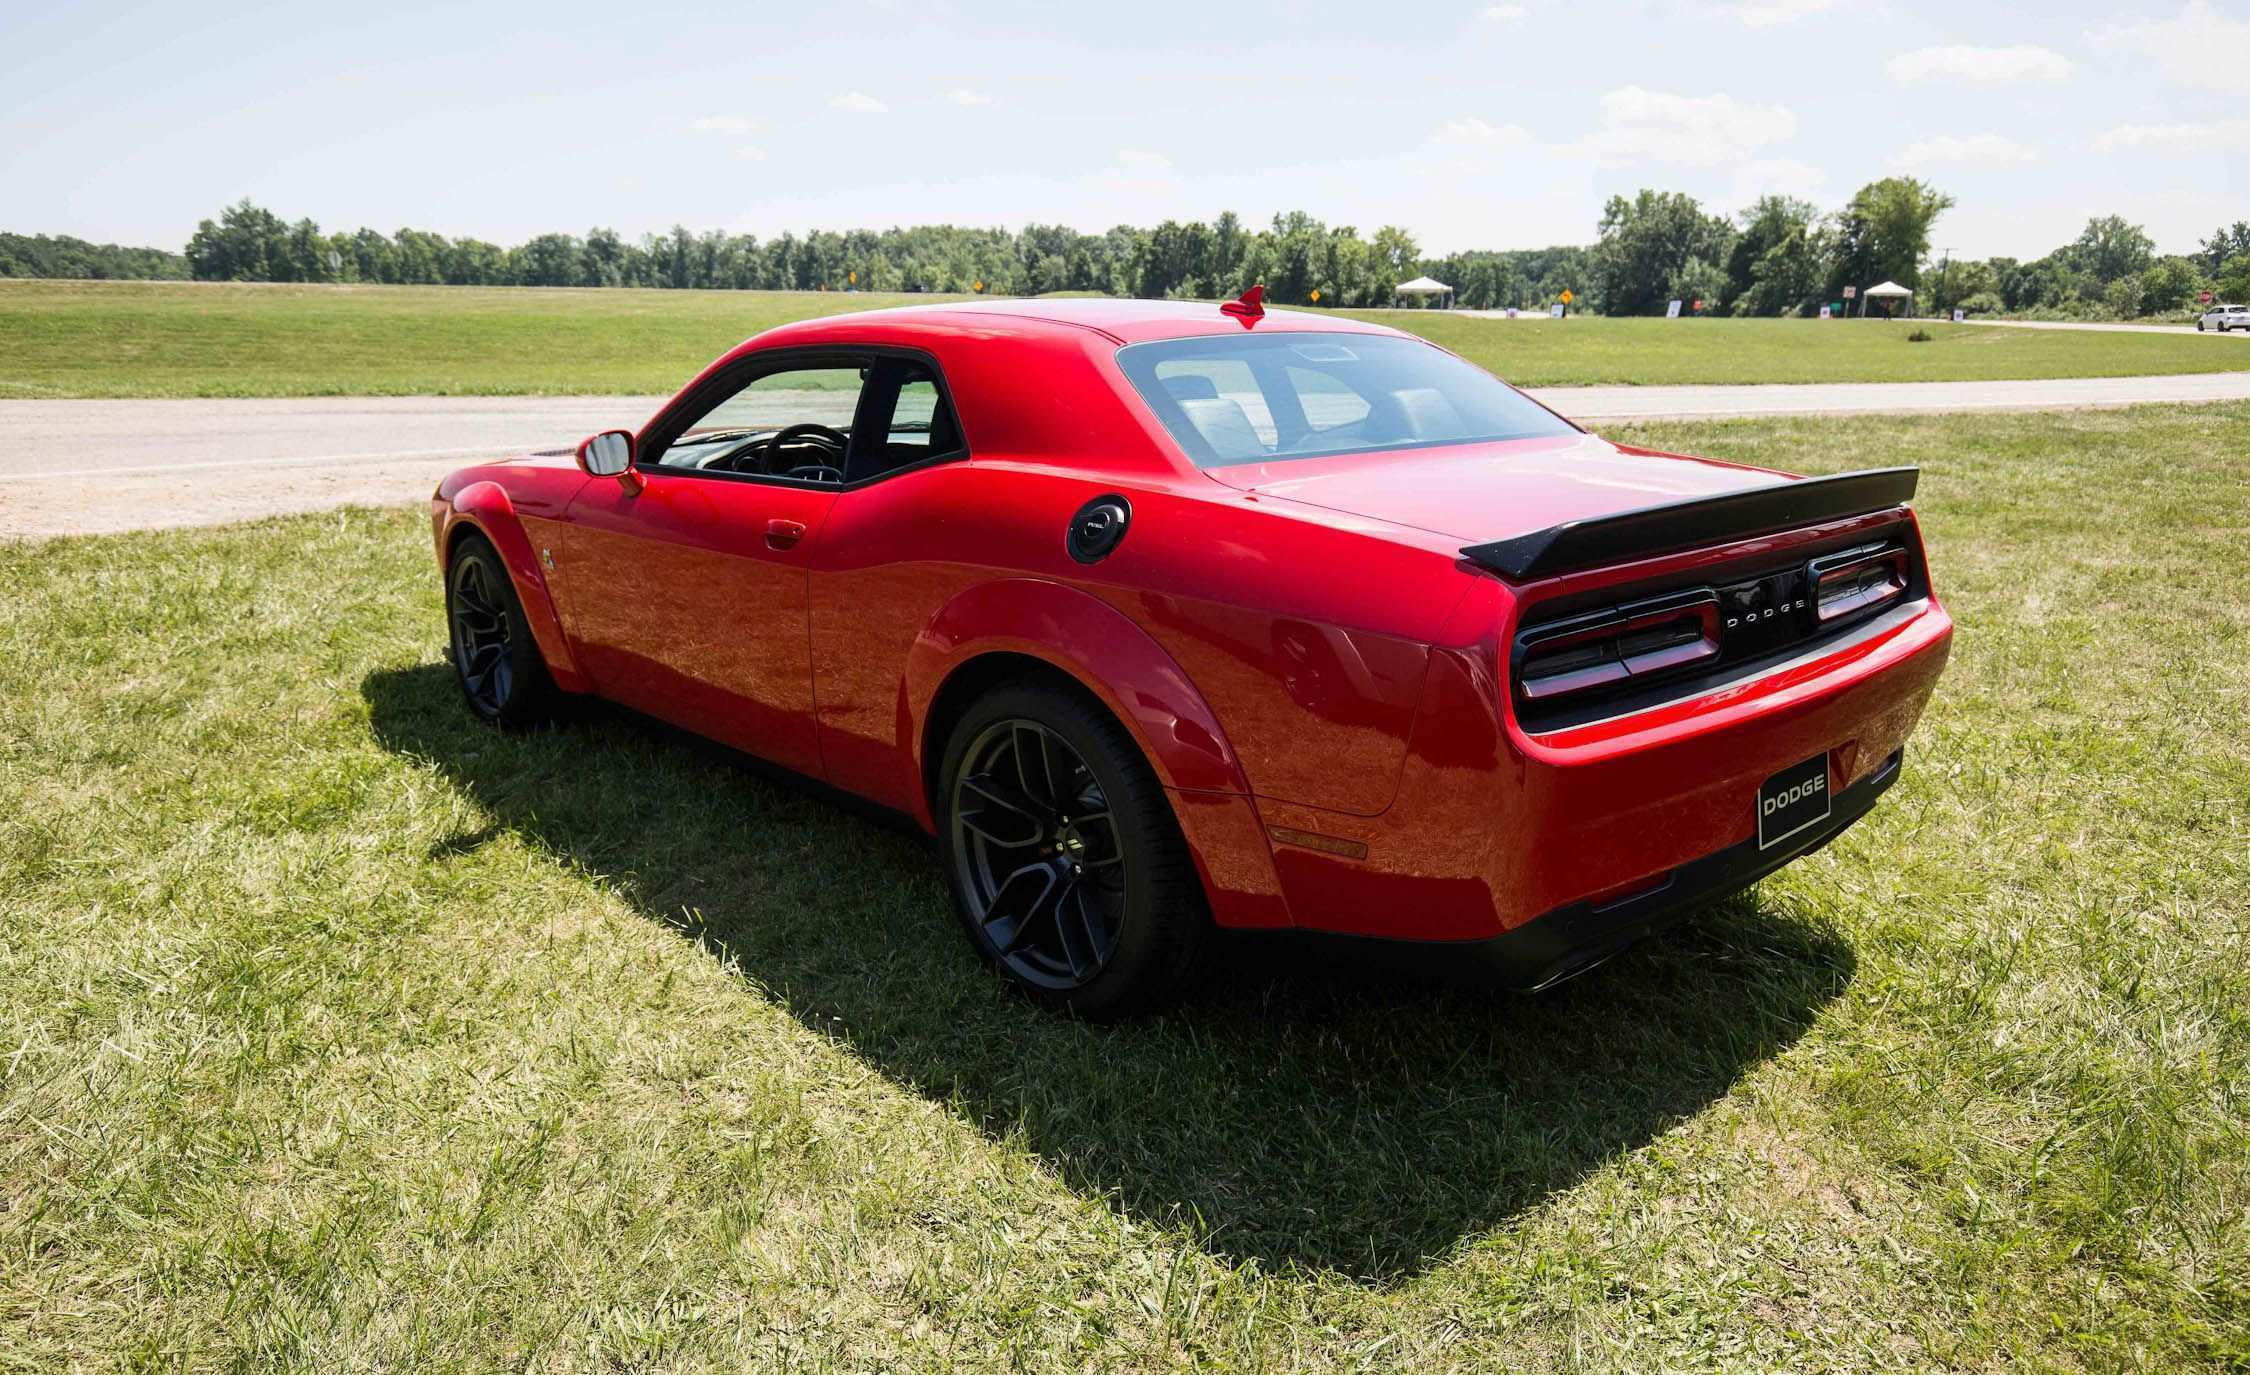 64 New 2019 Dodge Challenger News Style with 2019 Dodge Challenger News